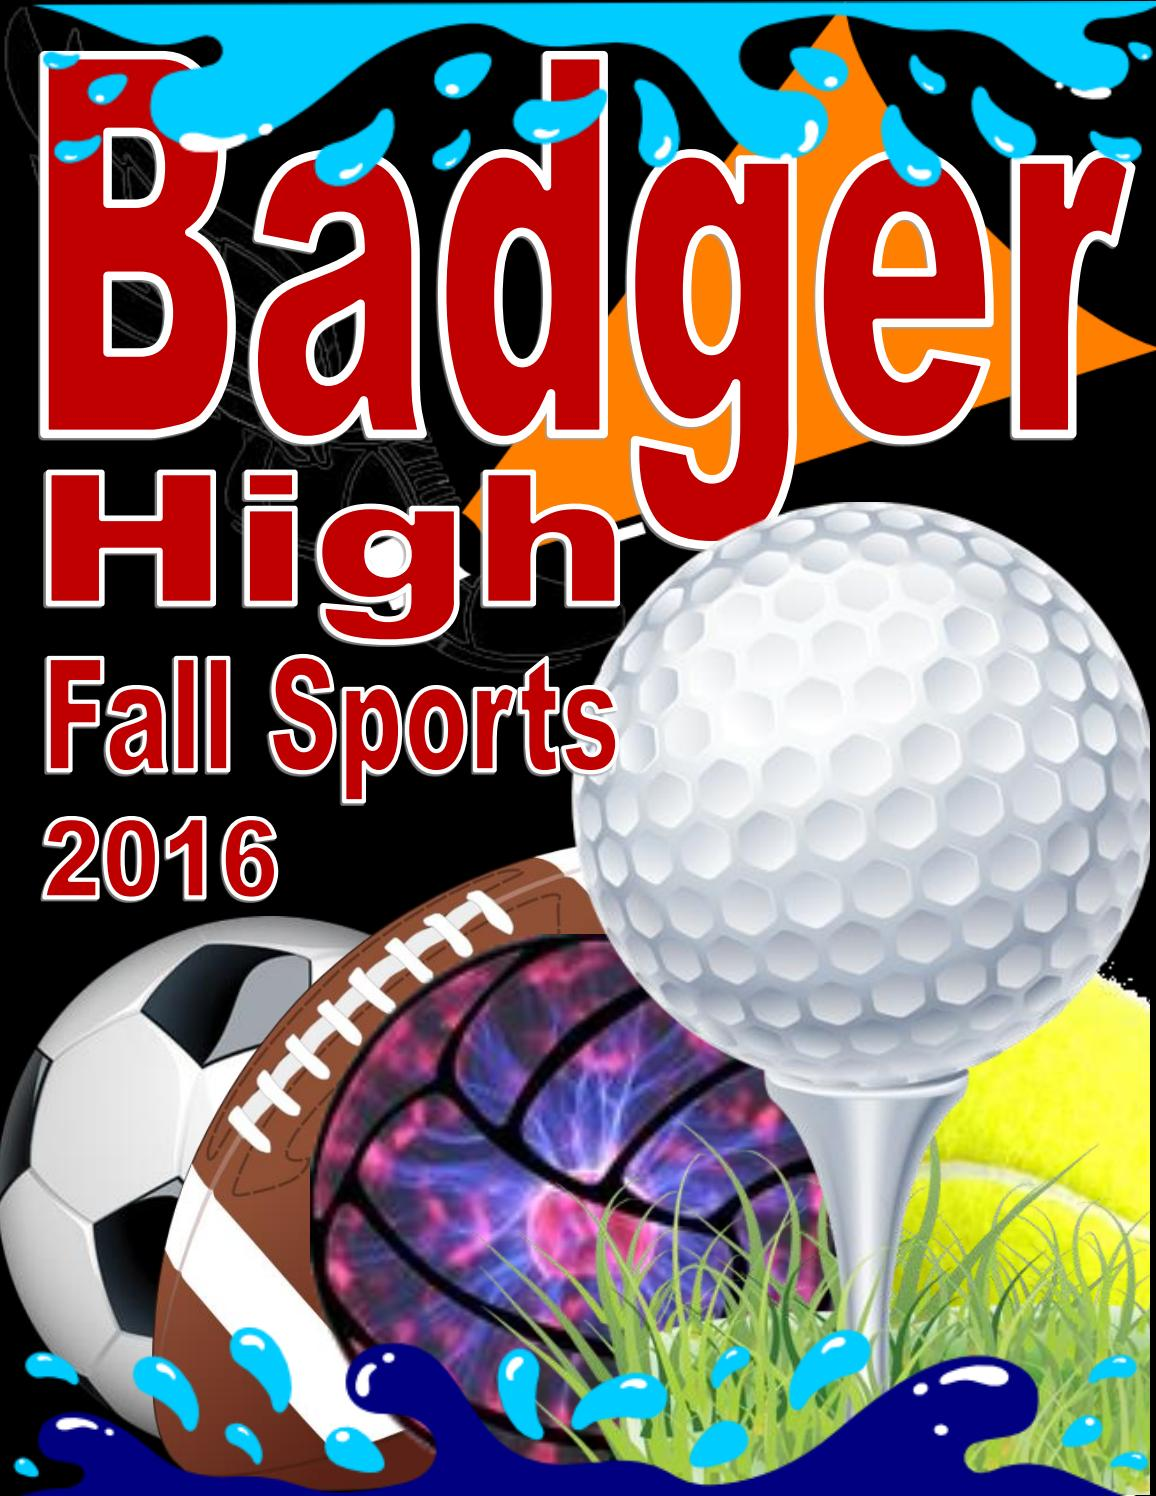 Badger High School Fall 2016 17 Sports Guide By Lake